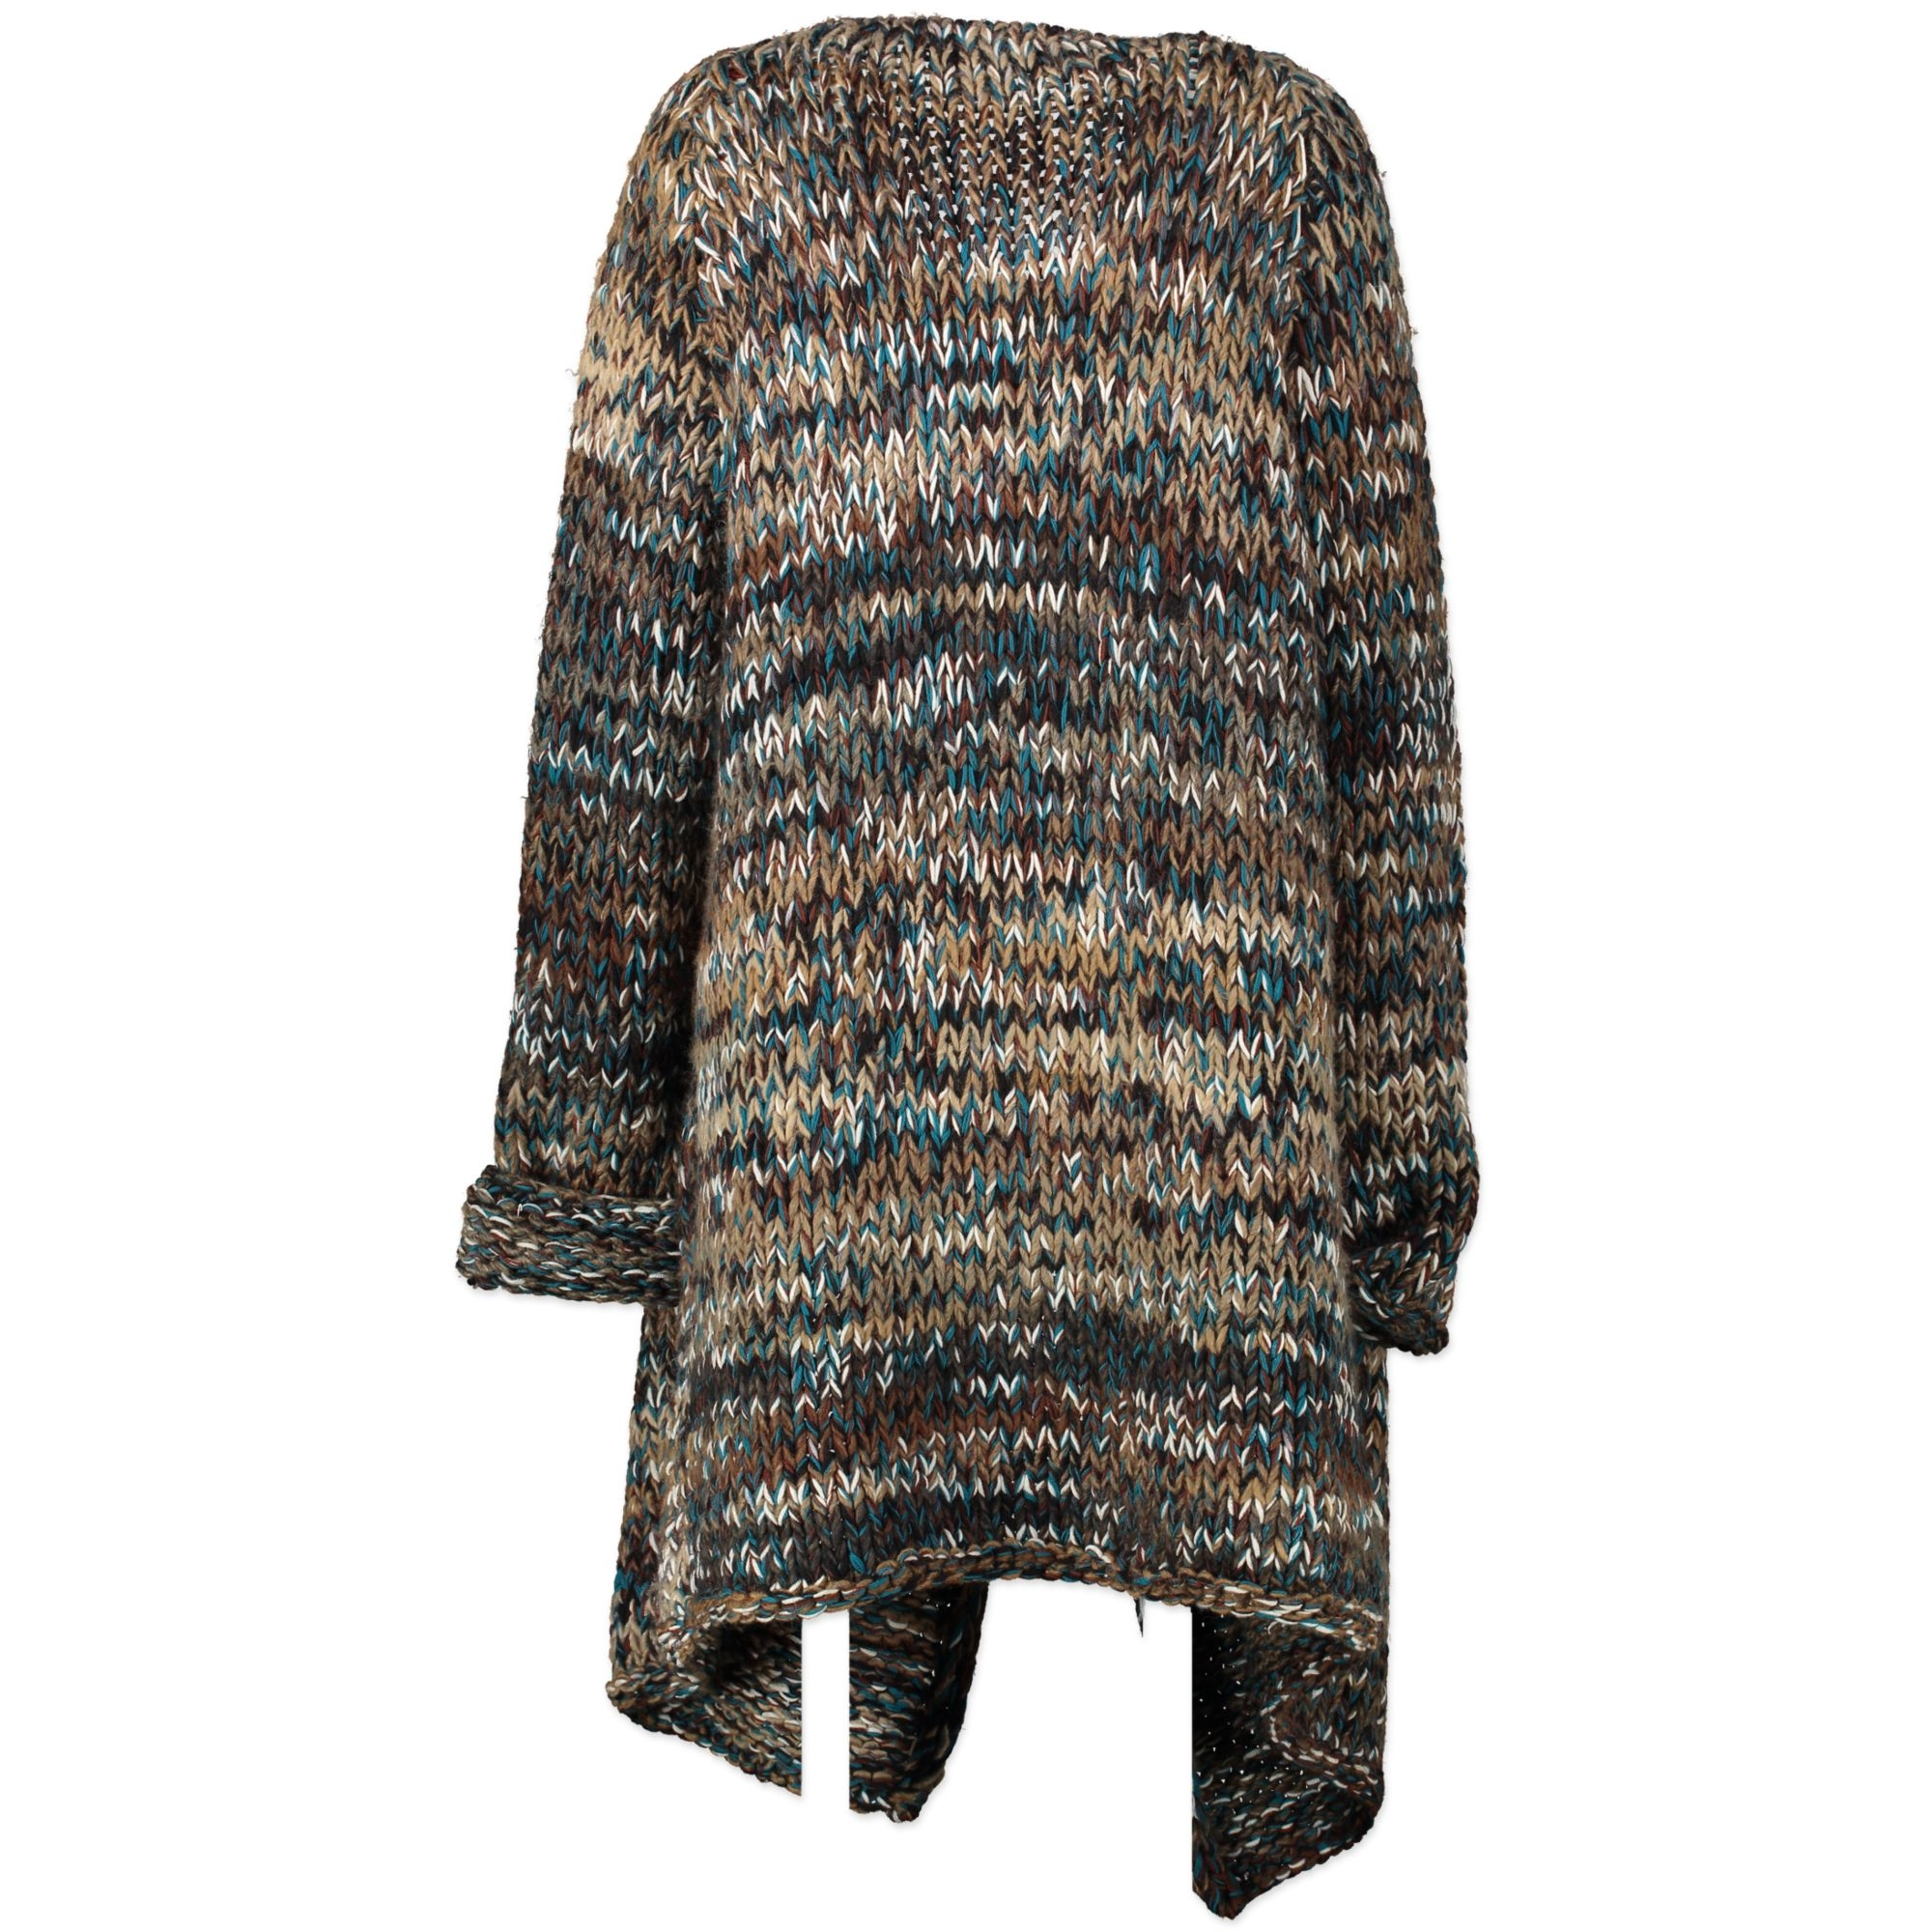 Misssoni Wool-Blend Cable-Knit Cardigan Multicolor